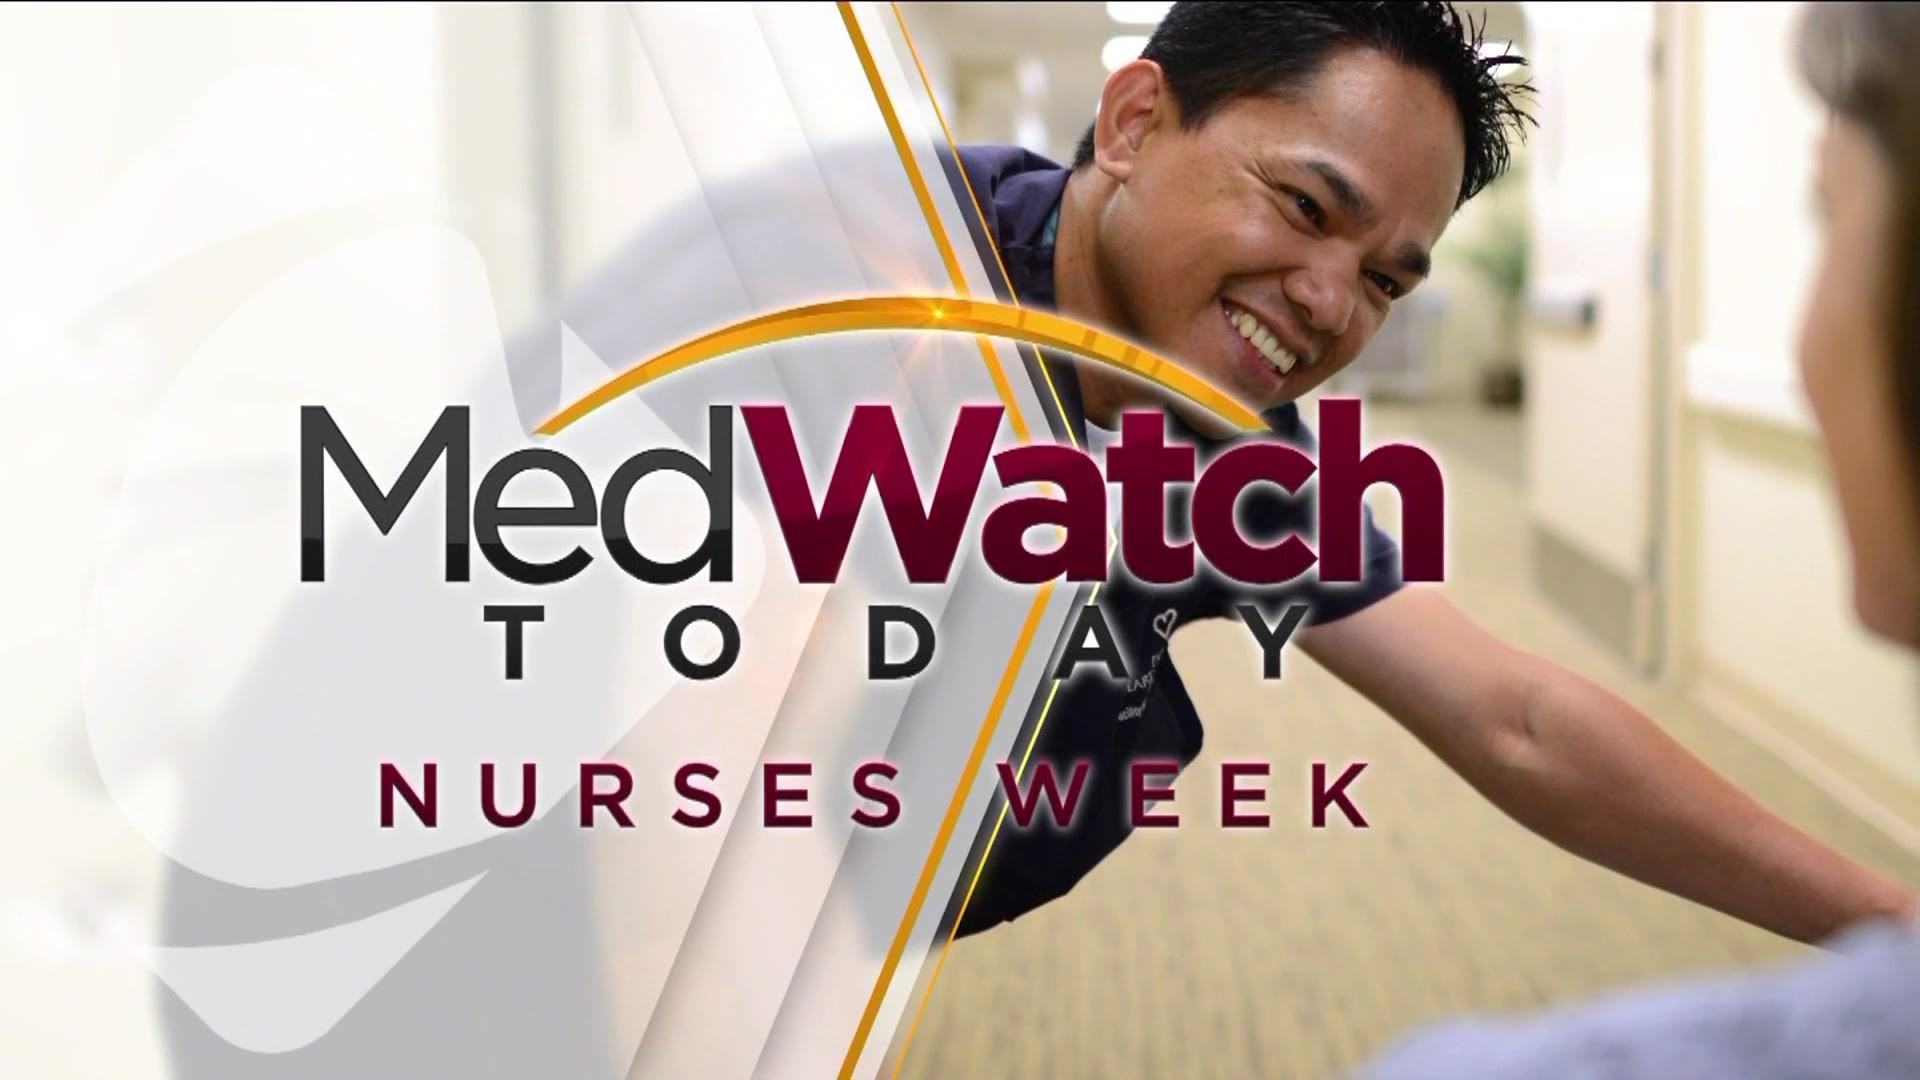 MedWatch Today: Doctors say thank you to nurses on National Nurses Week